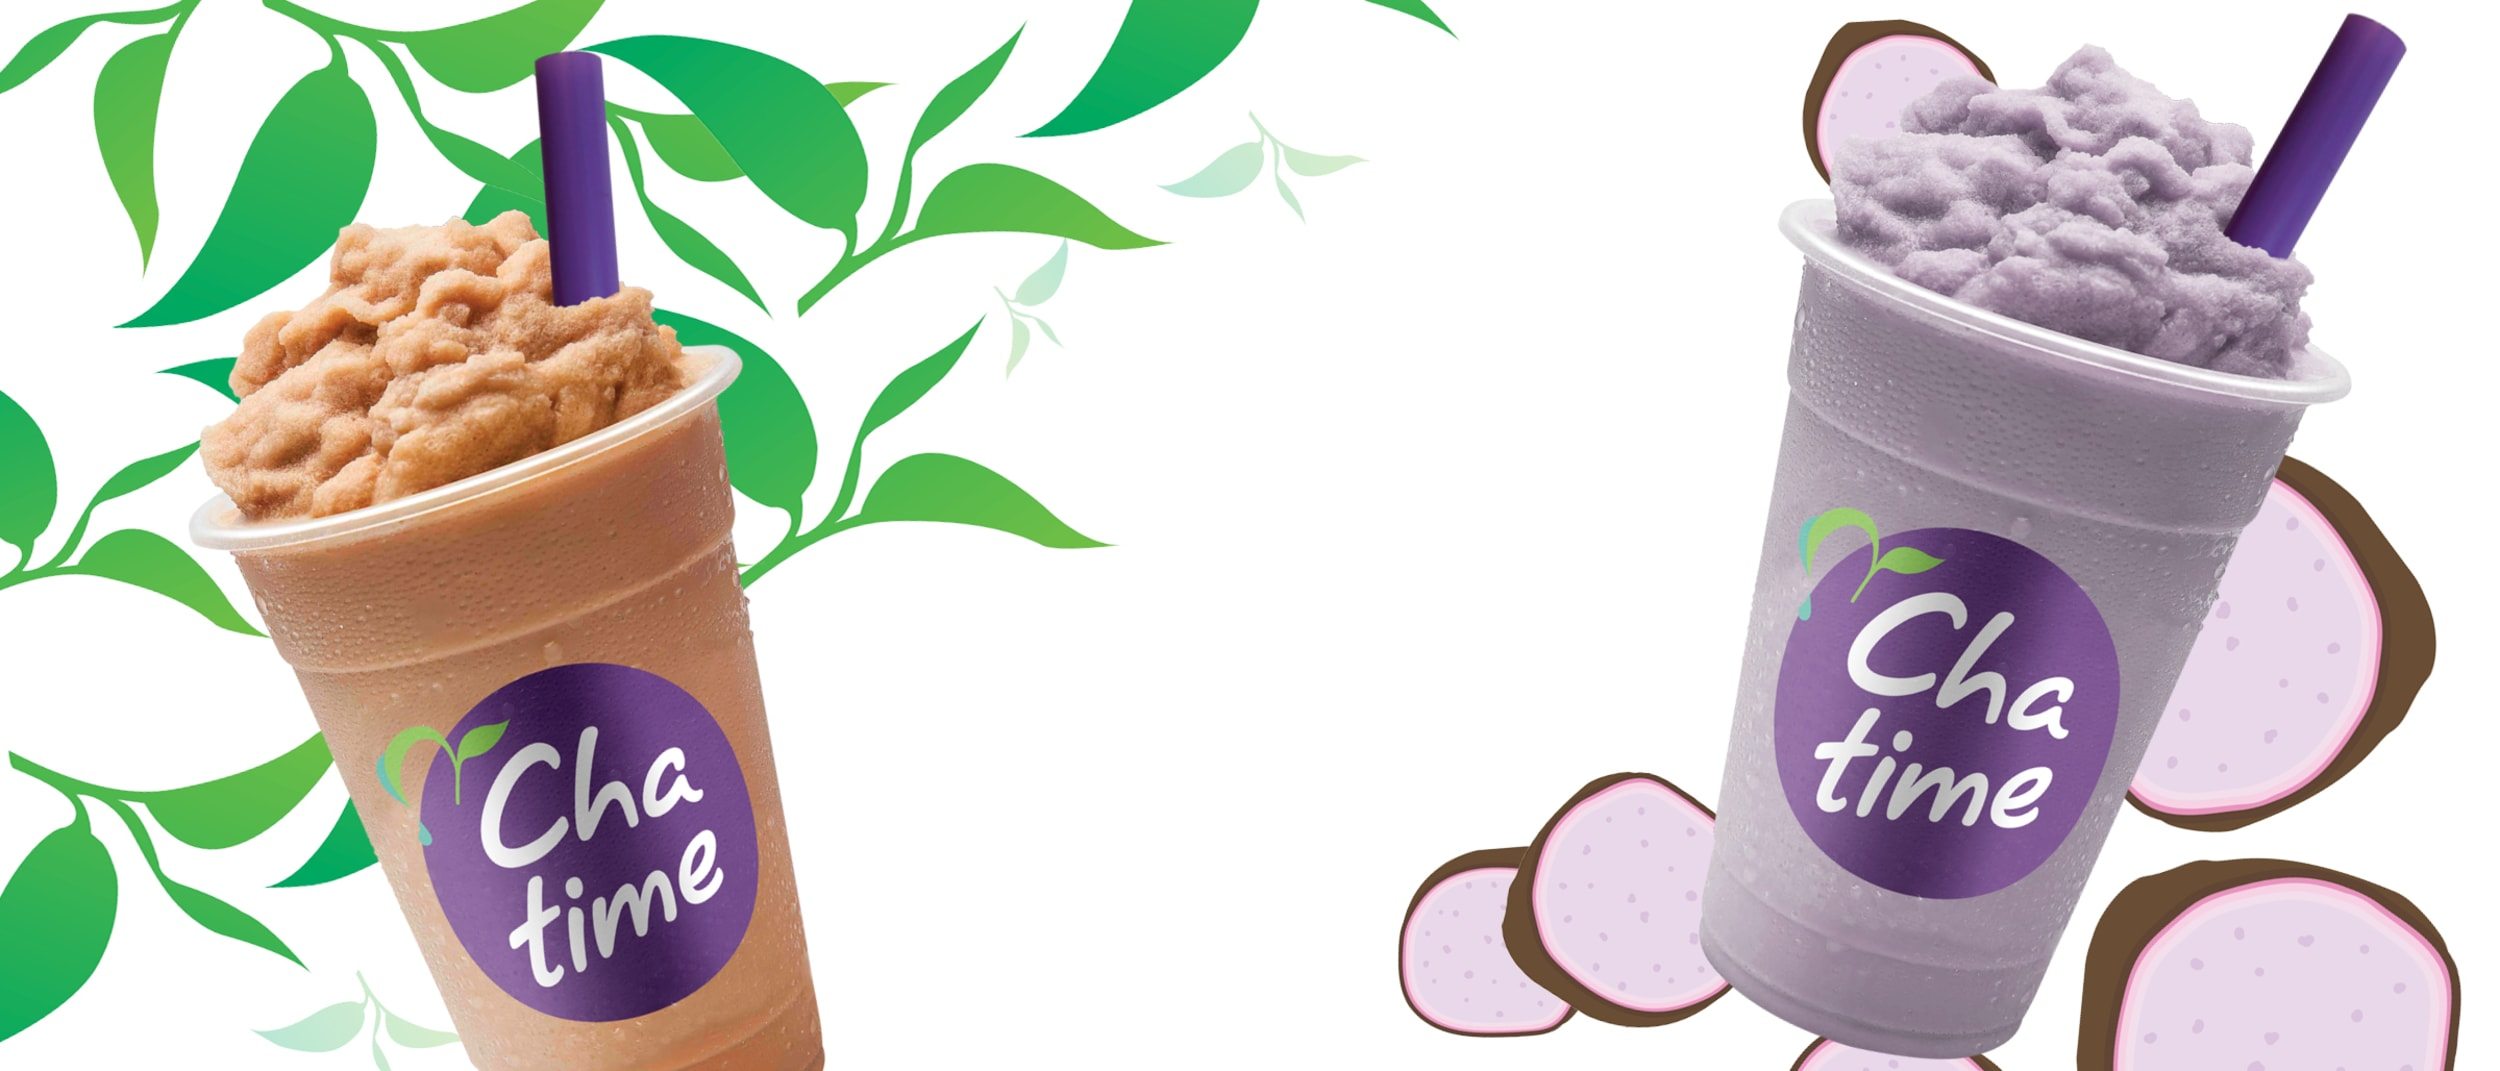 Chatime: Frozen Thai and Taro Teas